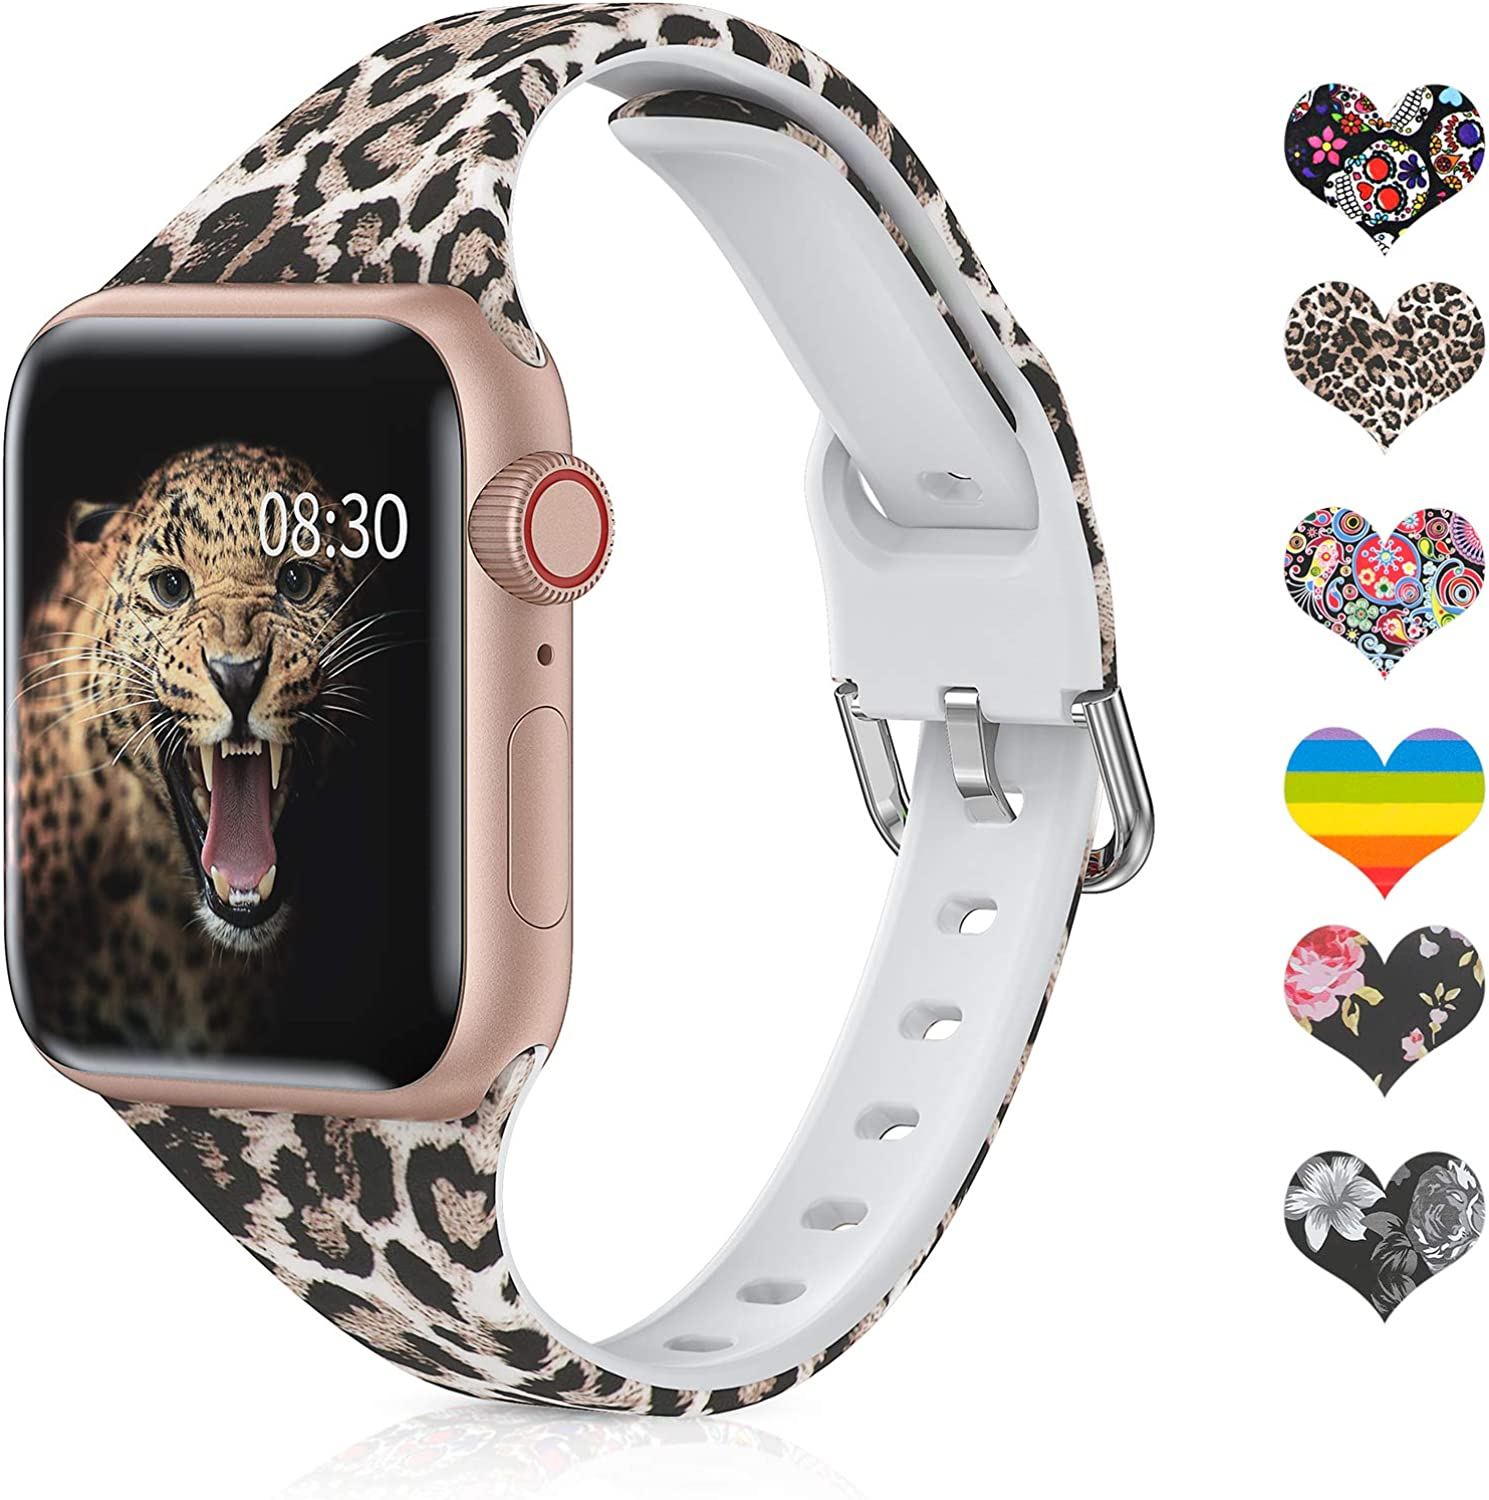 Moolia Slim Printed Pattern Band Compatible with Apple Watch Band 38mm 40mm, Soft Silicon Floral Fadeless Women Narrow Replacement Strap for iWatch Series 6/5/4/3/2/1/SE